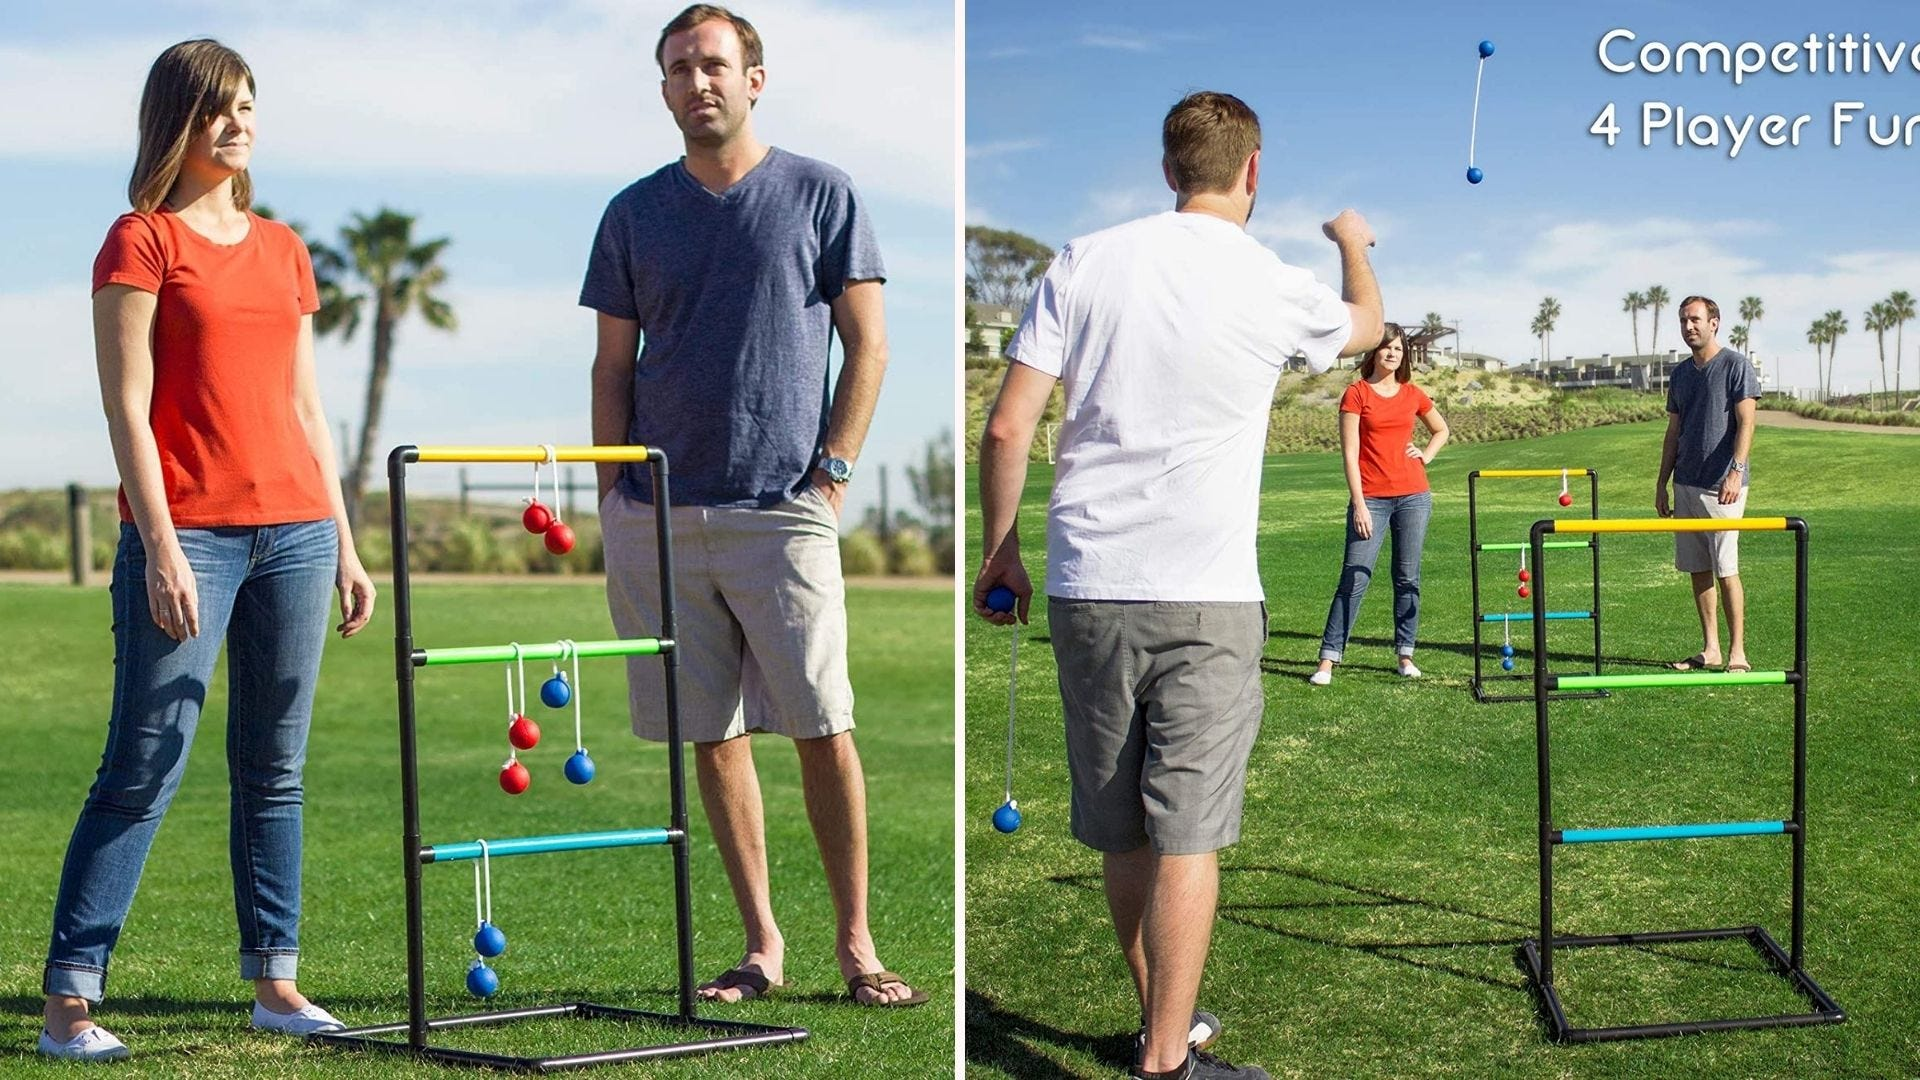 People playing ladderball on the grass